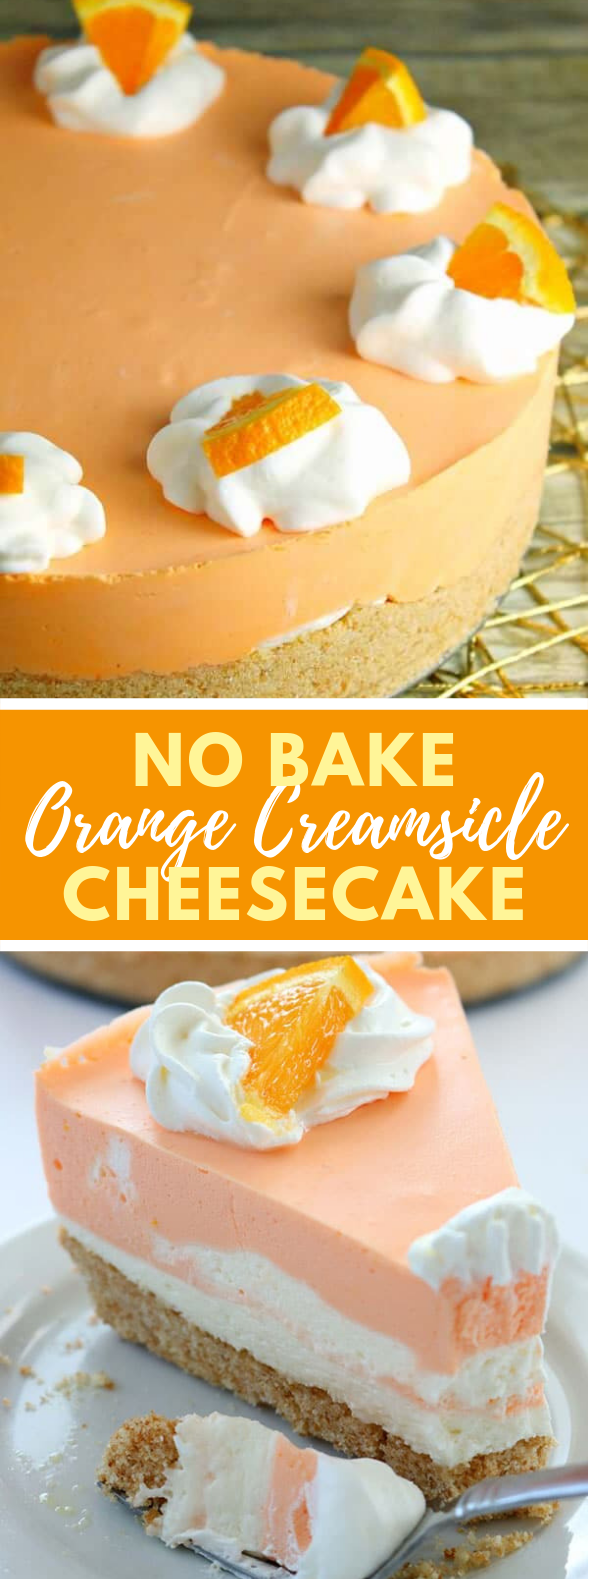 NO BAKE ORANGE CREAMSICLE CHEESECAKE #desserts #perfectsummer